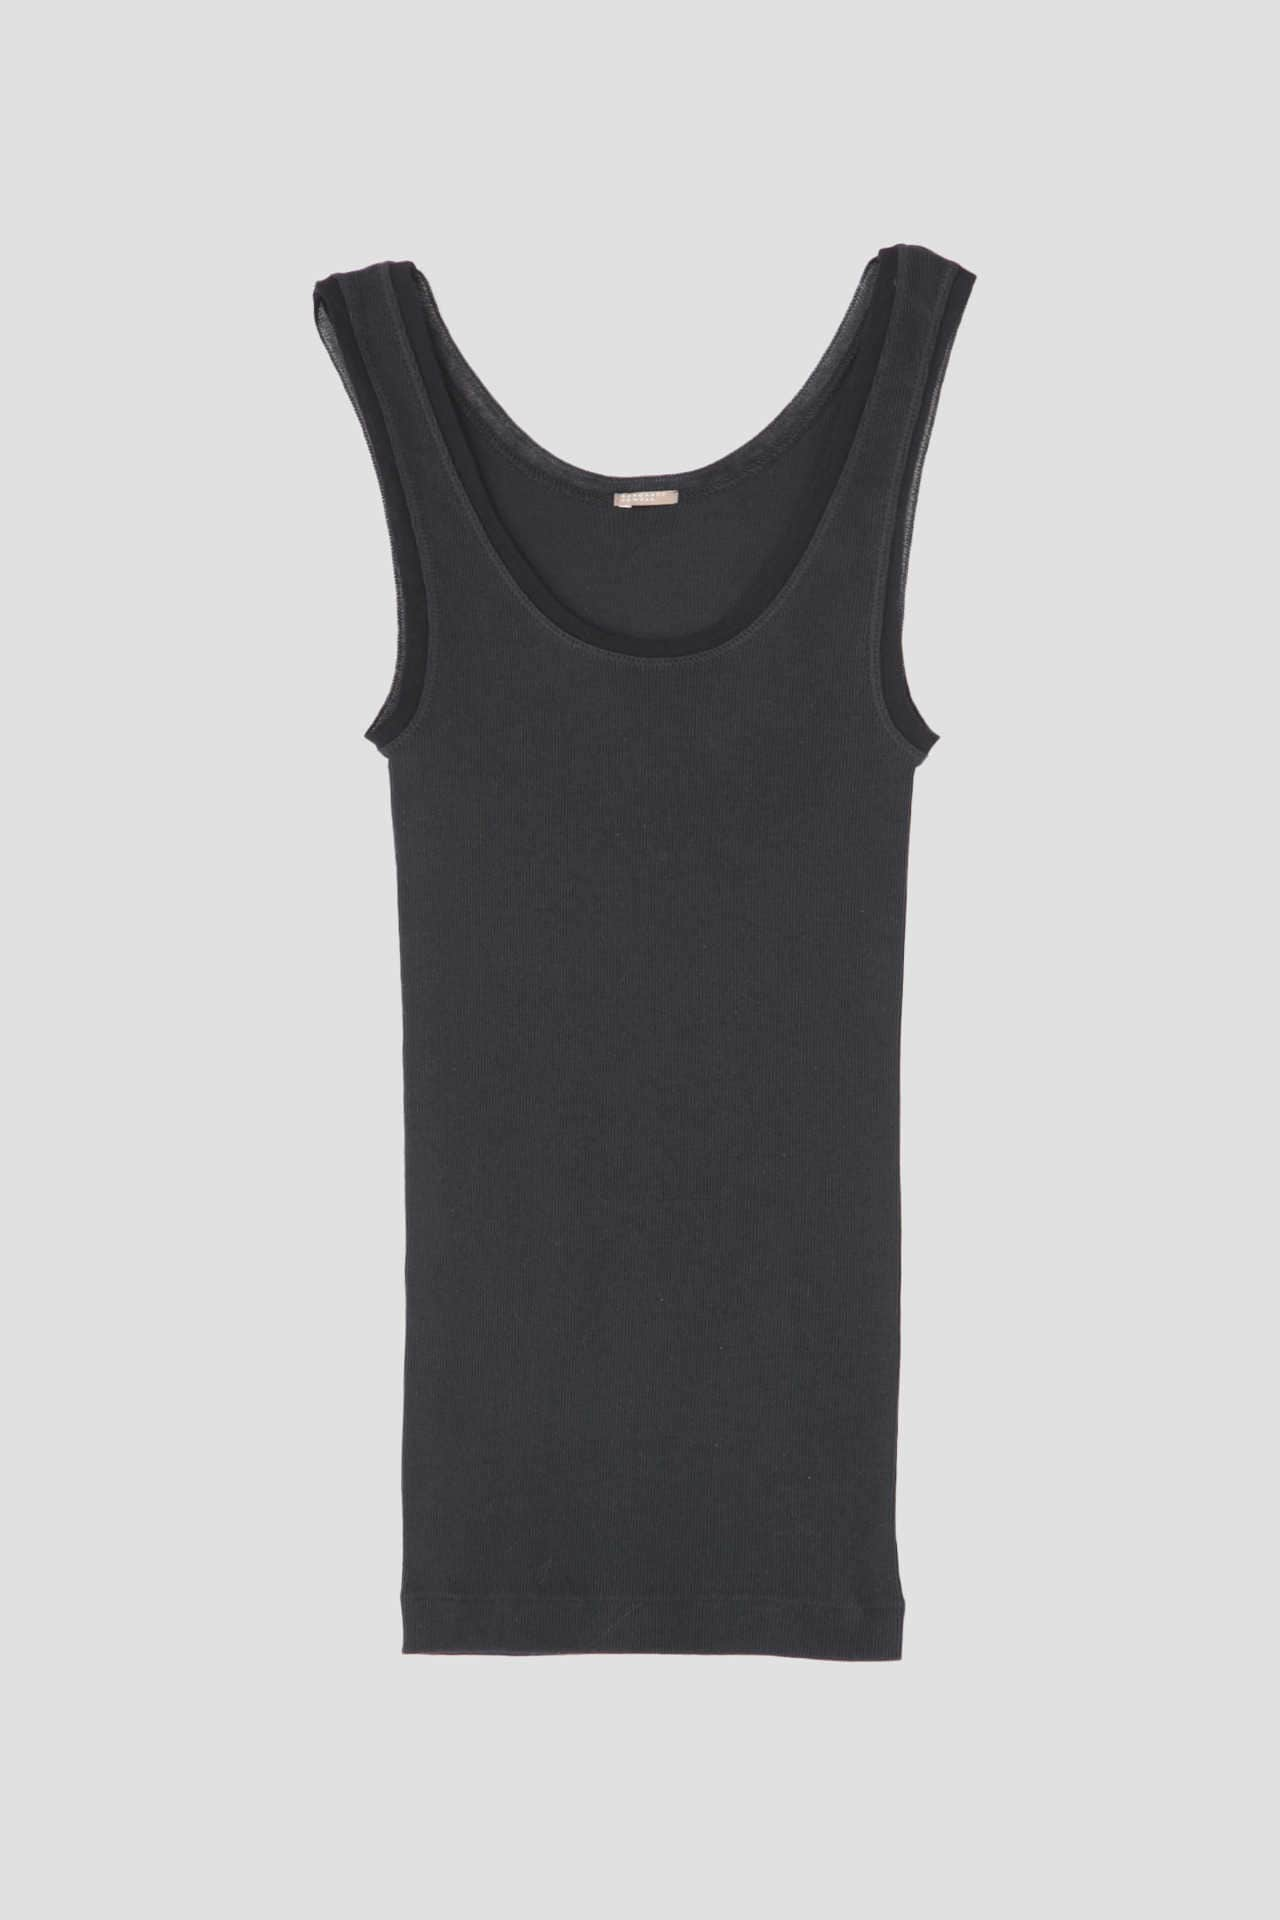 SUPIMA COTTON RIB TANK1